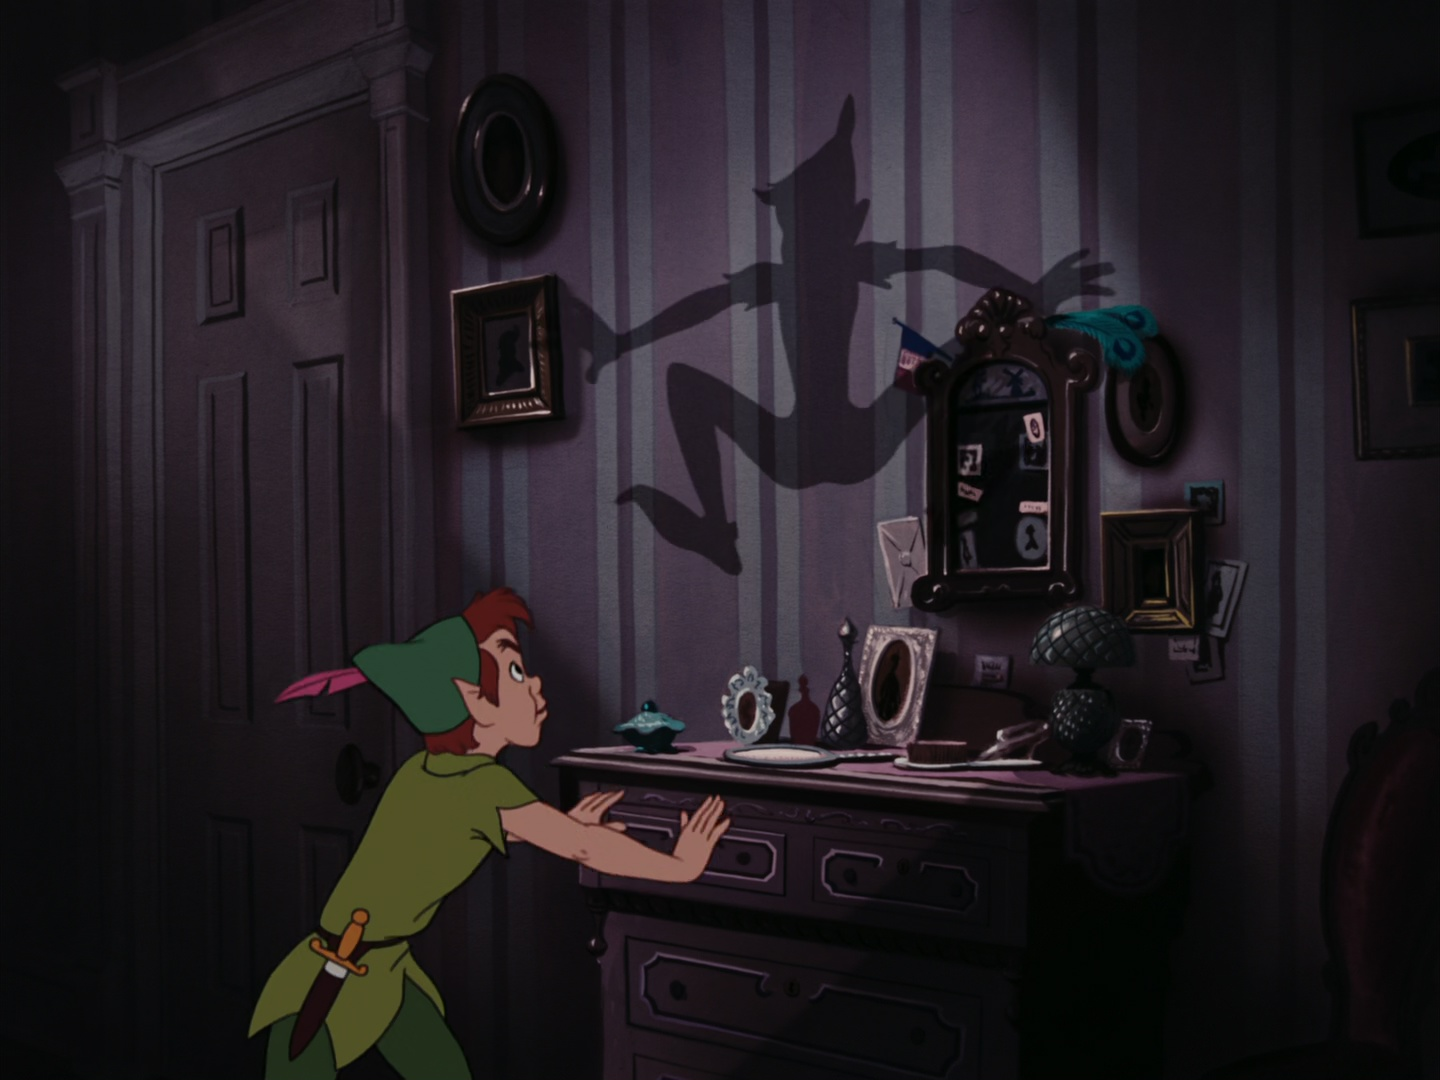 File:Peter-pan-and-his-shadow.jpg